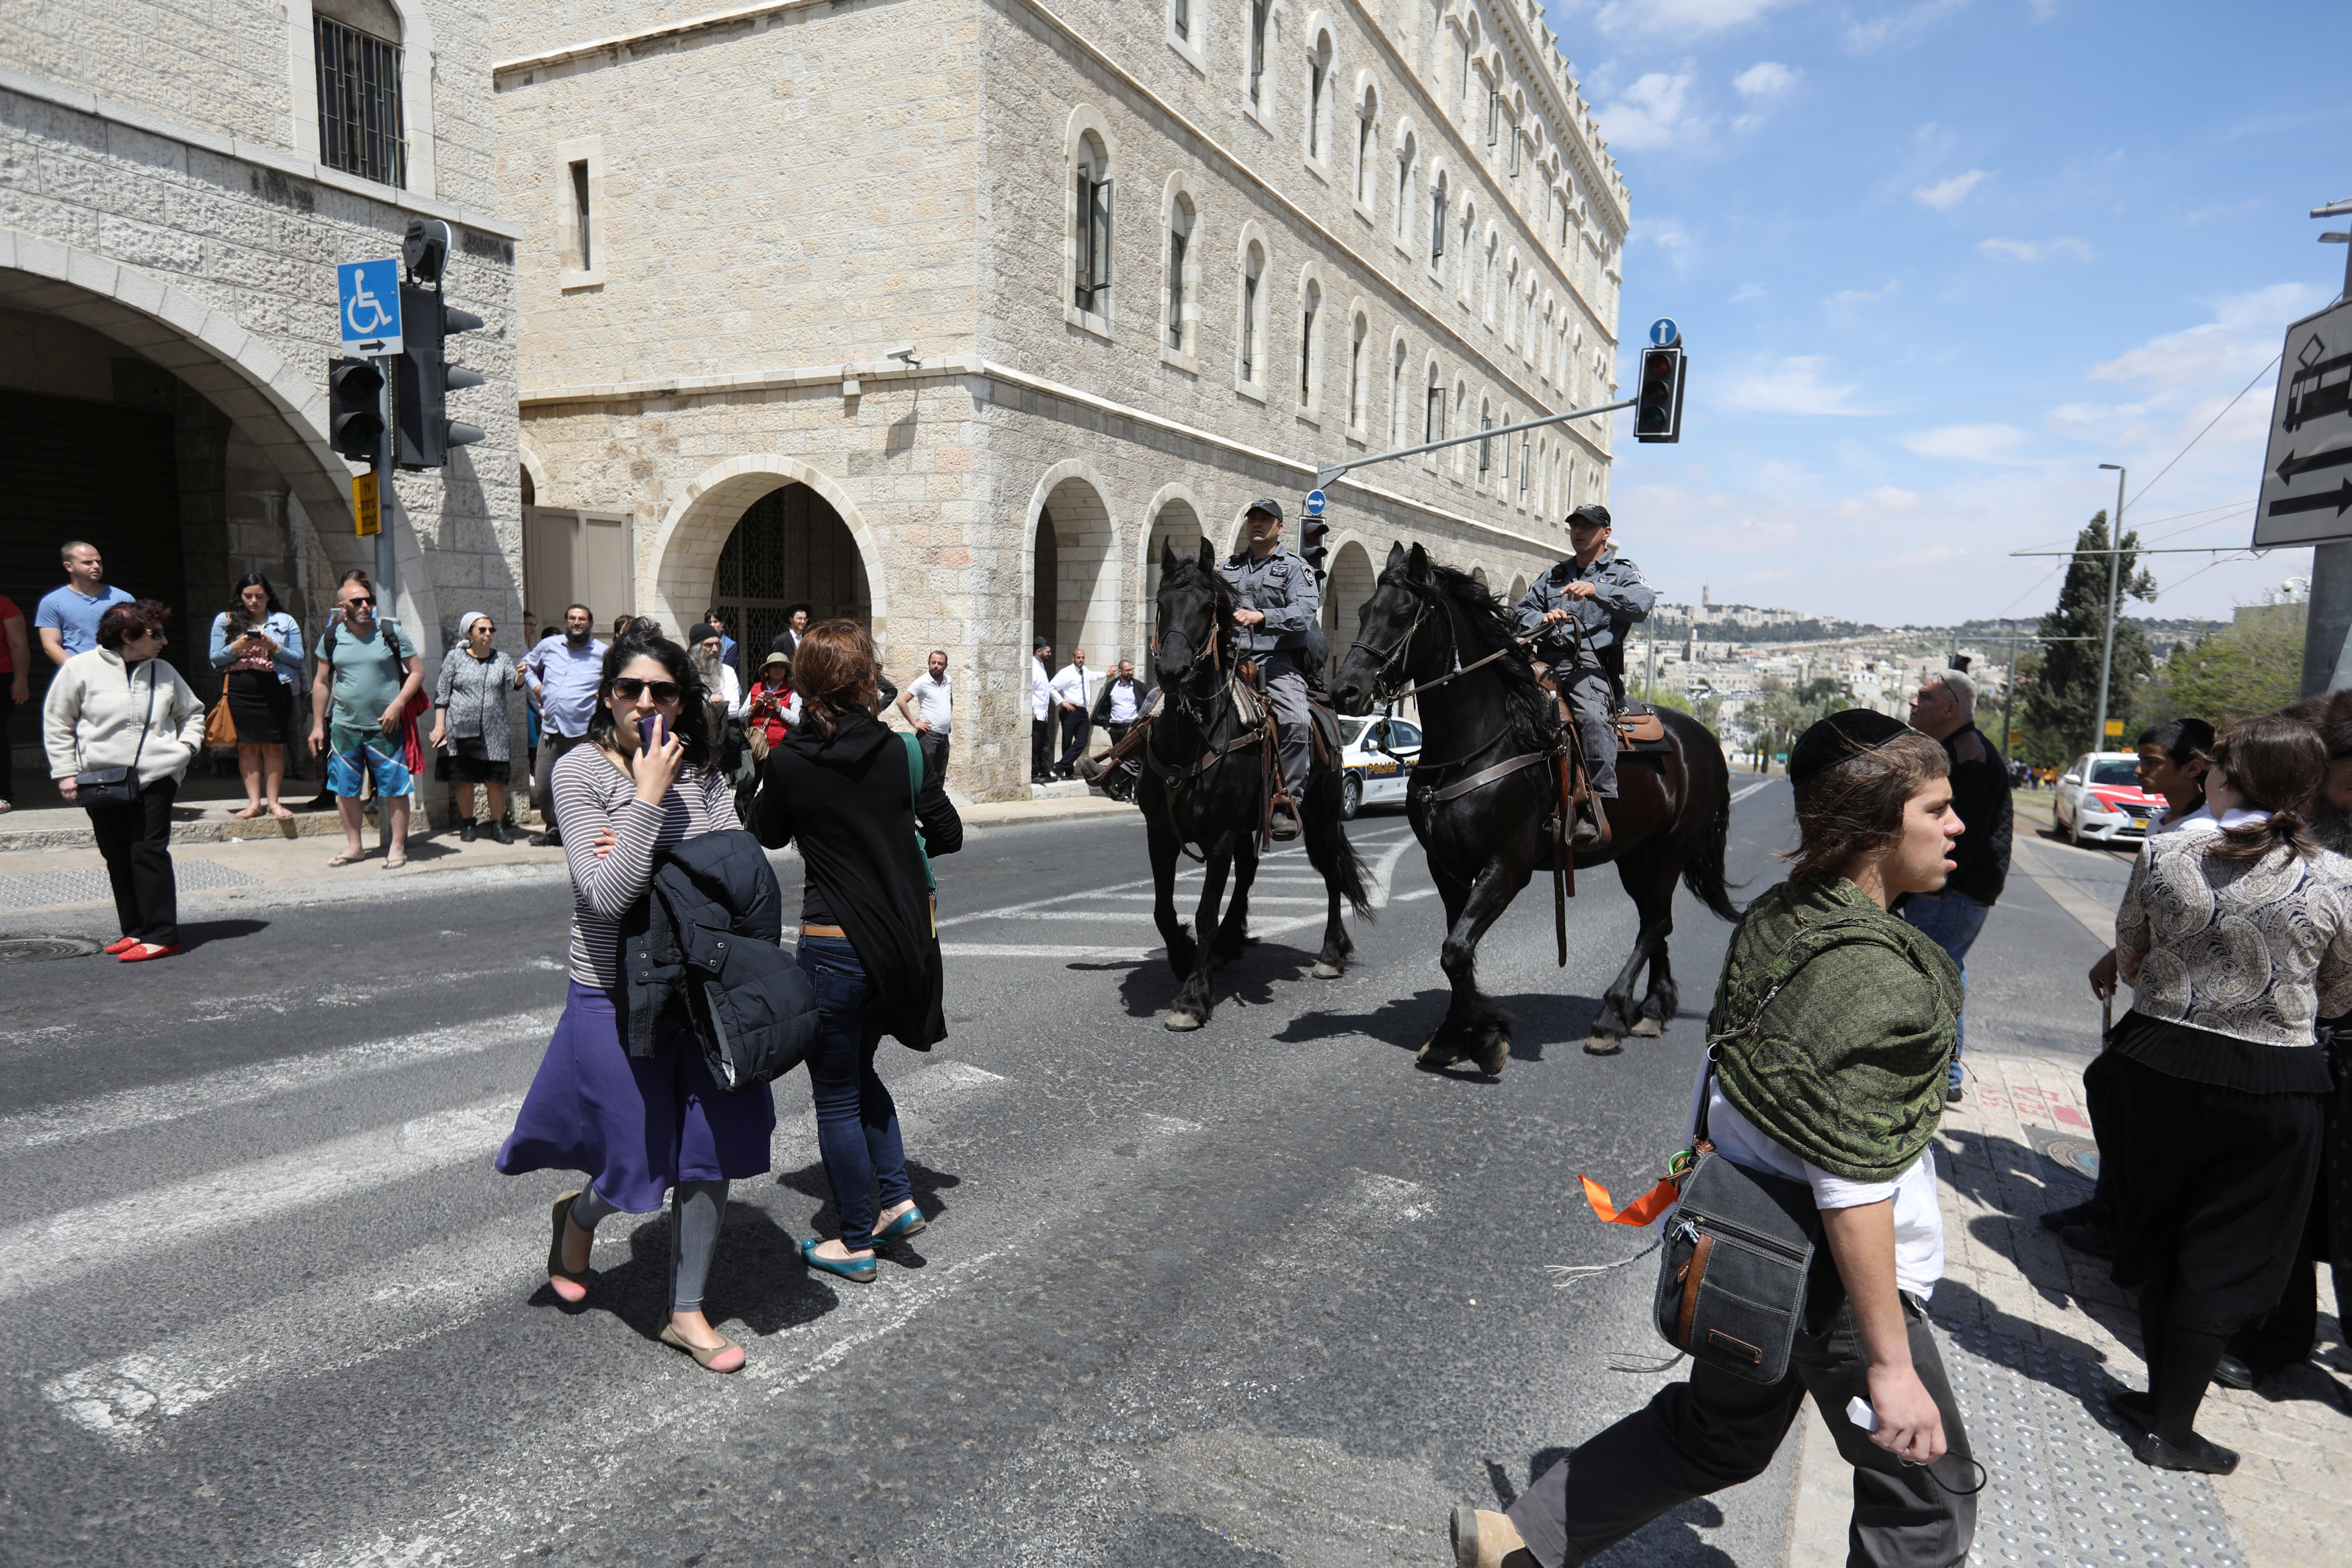 Israeli policemen on horses keep the order following a stabbing attack just outside Jerusalem's Old City, according to Israeli police on April 14, 2017. (REUTERS/Ammar Awad)